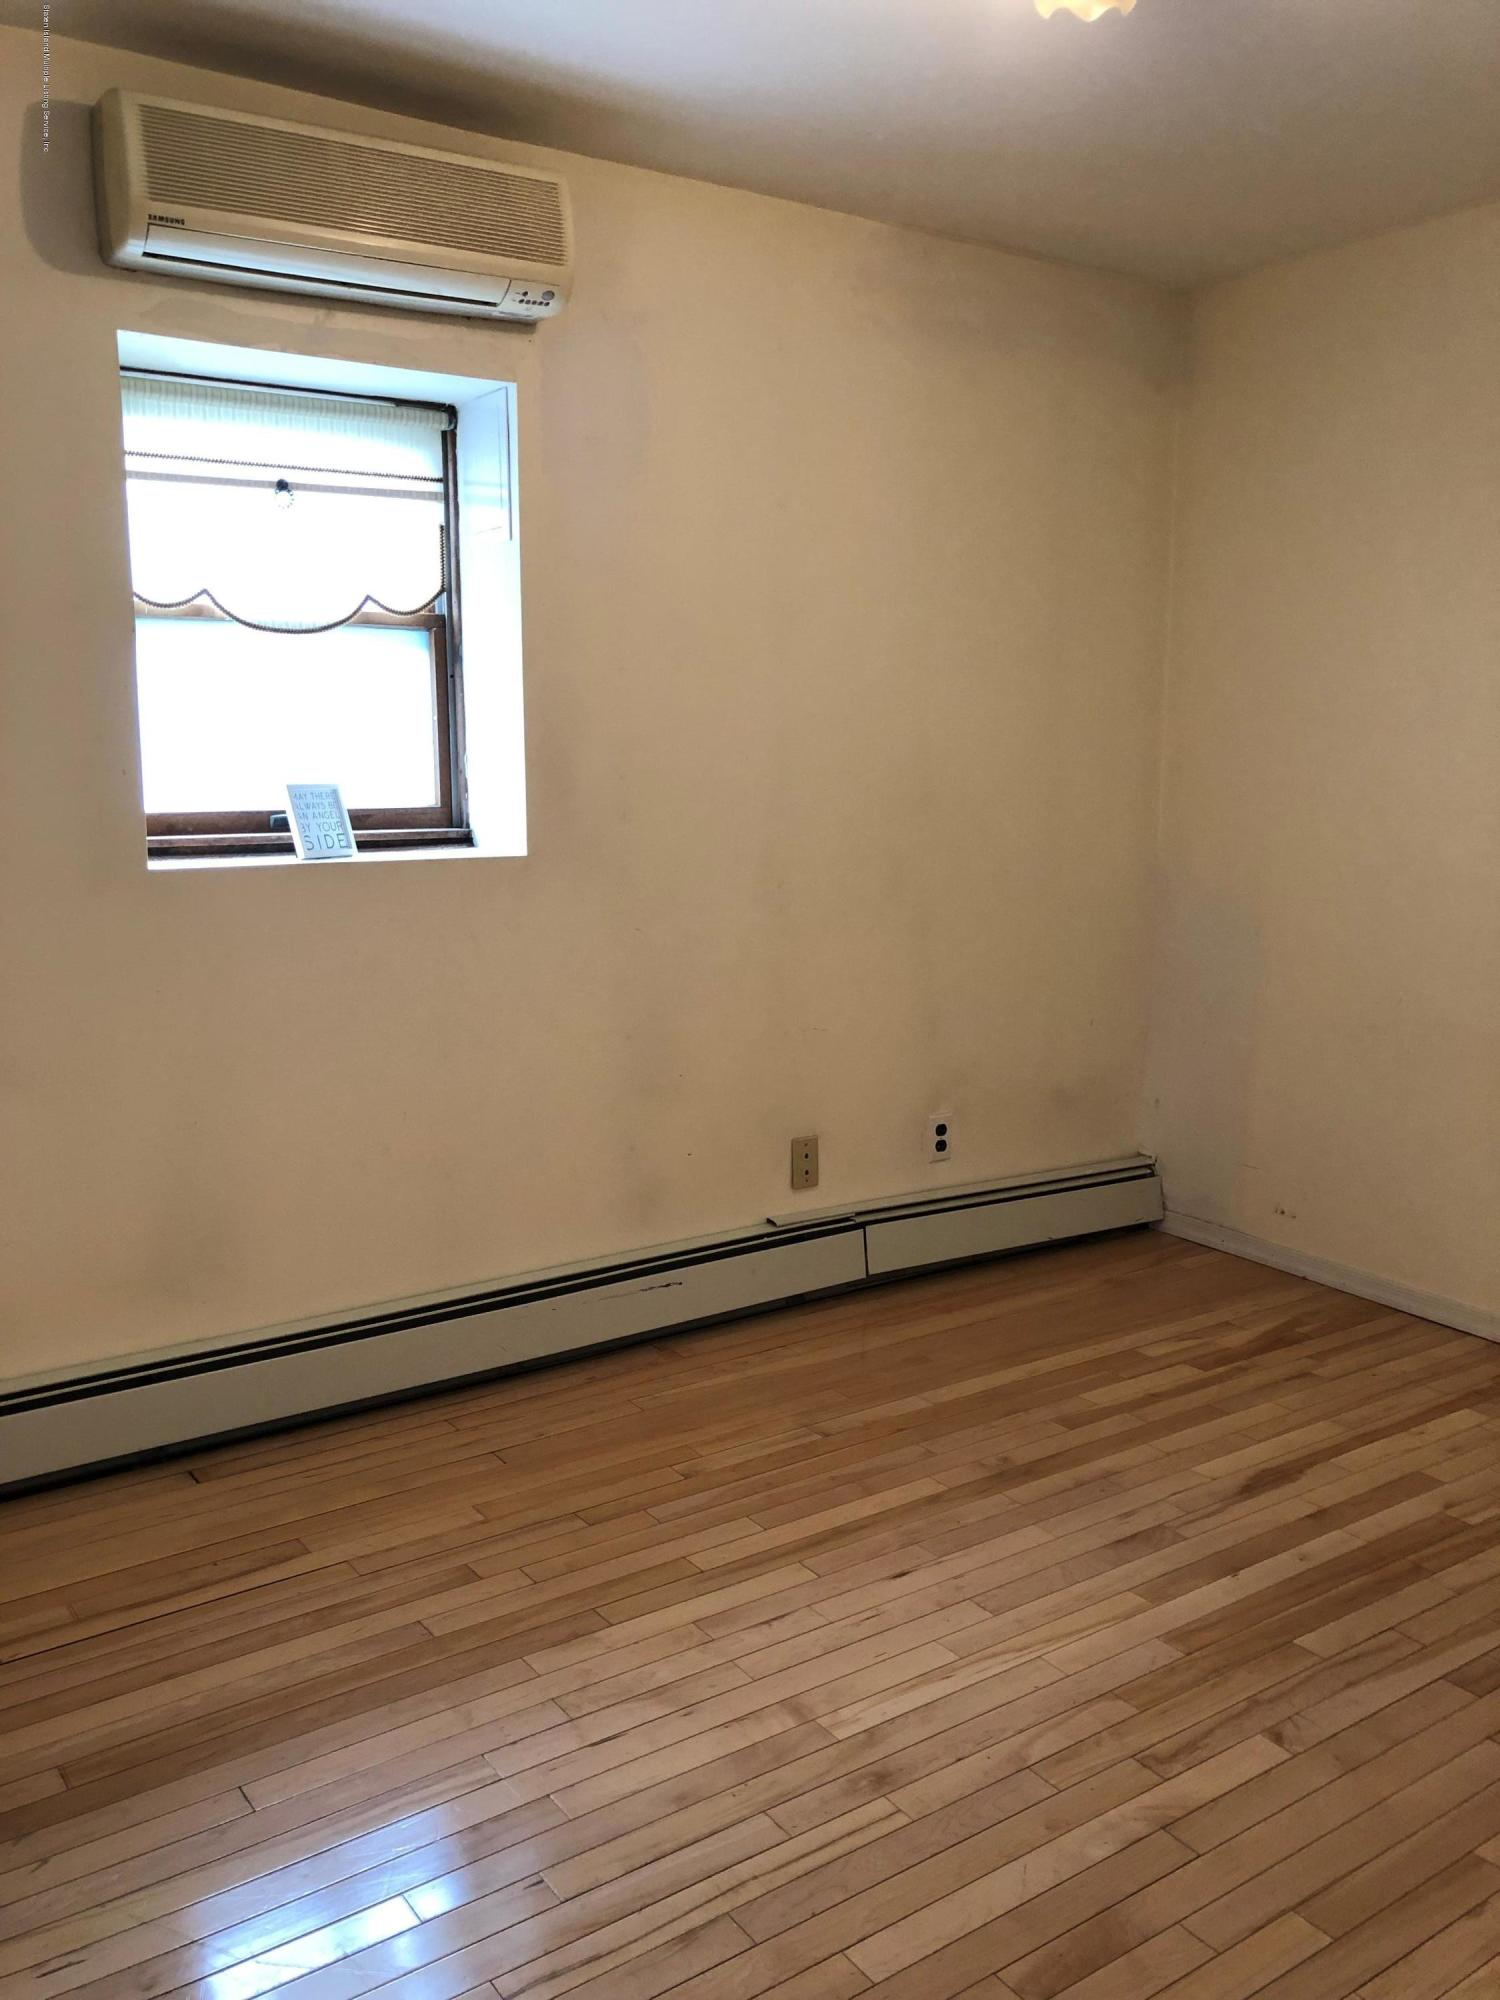 41 Laconia Avenue,Staten Island,New York,10305,United States,2 Bedrooms Bedrooms,5 Rooms Rooms,1 BathroomBathrooms,Res-Rental,Laconia,1129358